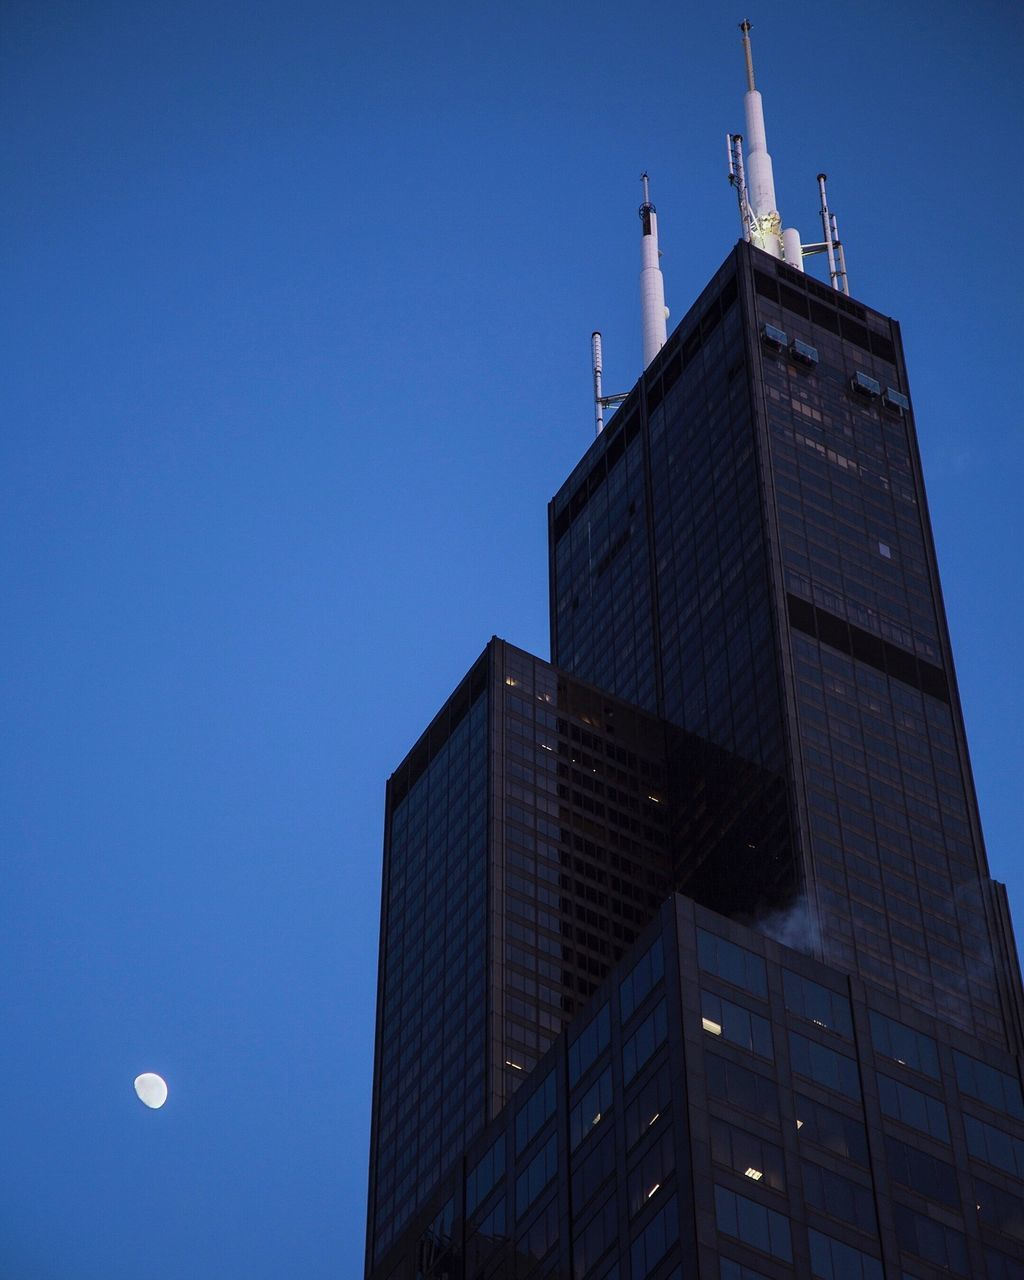 Low Angle View Of Willis Tower Against Blue Sky At Dusk